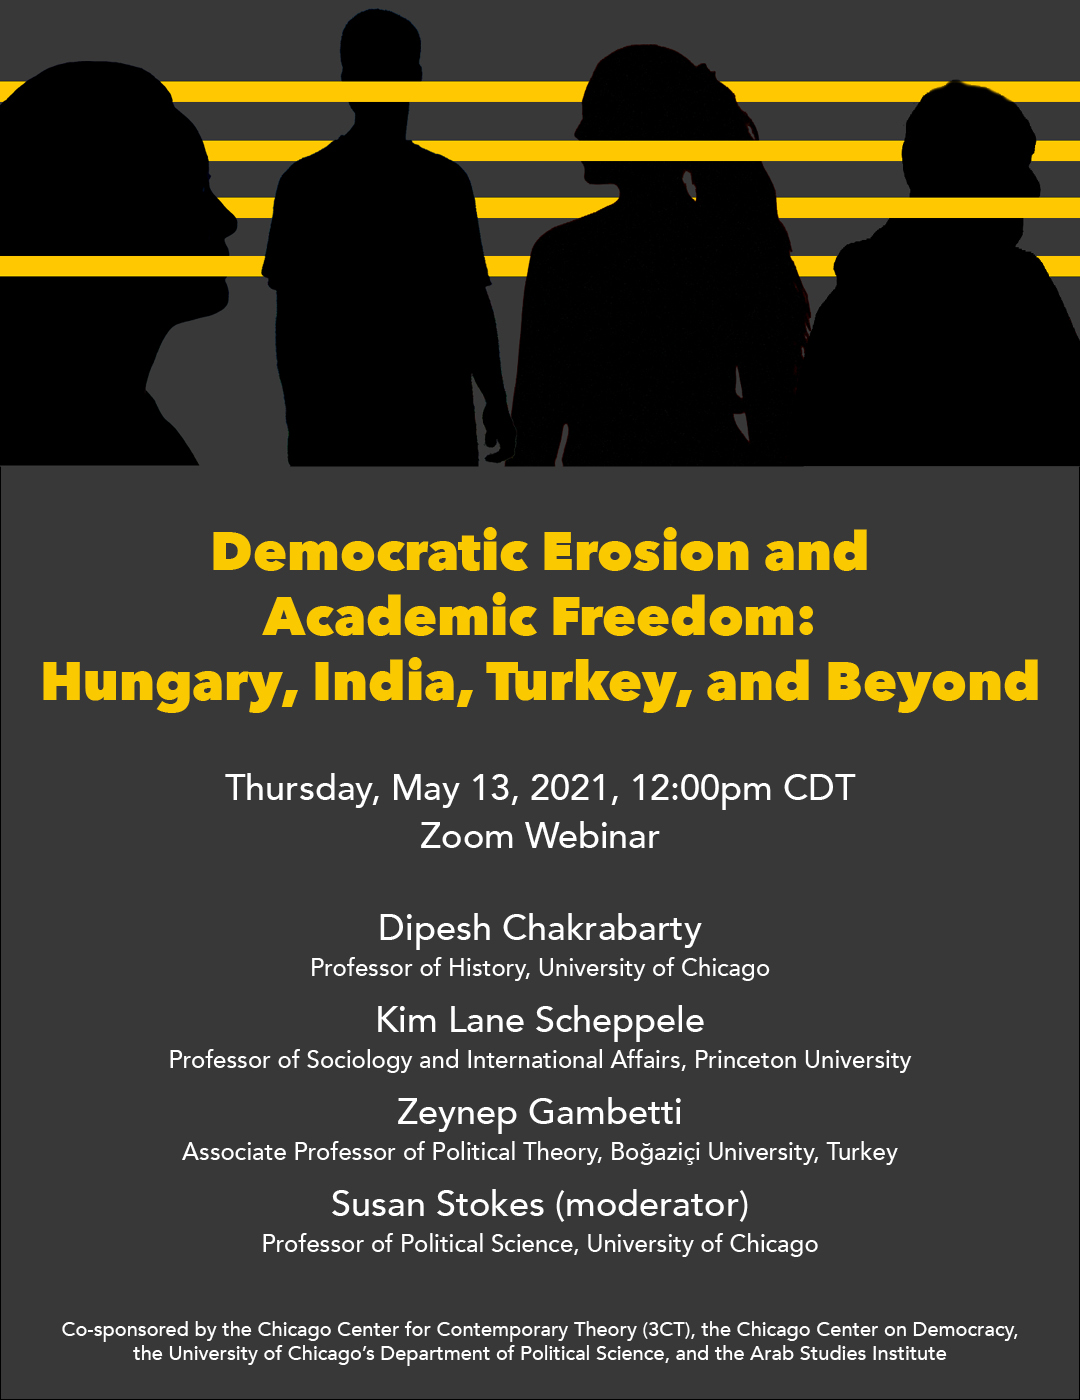 Flyer for Democratic Erosion and Academic Freedom event